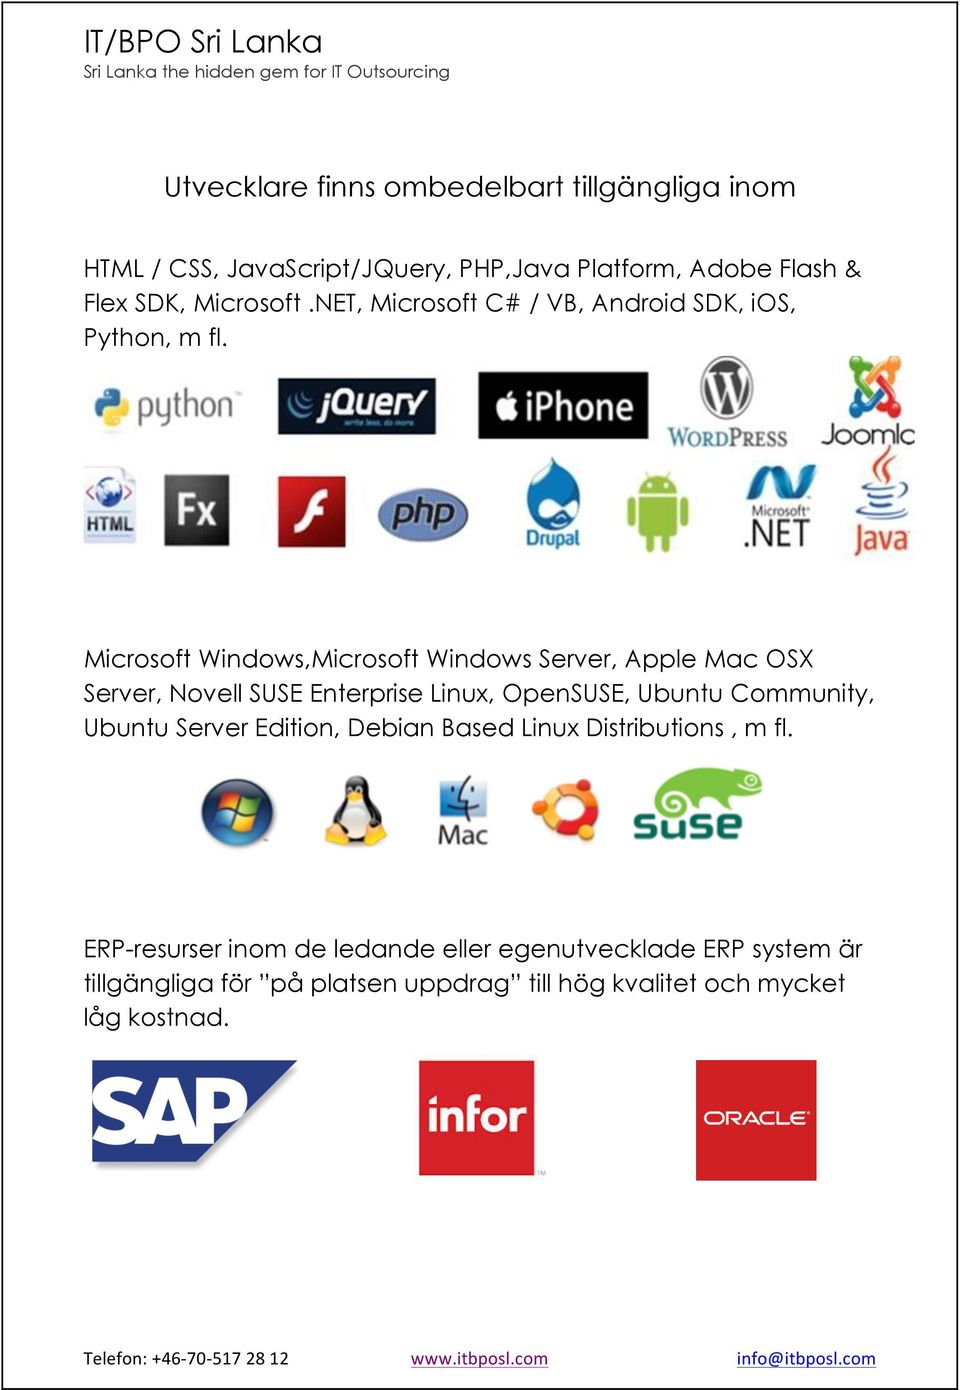 Microsoft Windows,Microsoft Windows Server, Apple Mac OSX Server, Novell SUSE Enterprise Linux, OpenSUSE, Ubuntu Community,